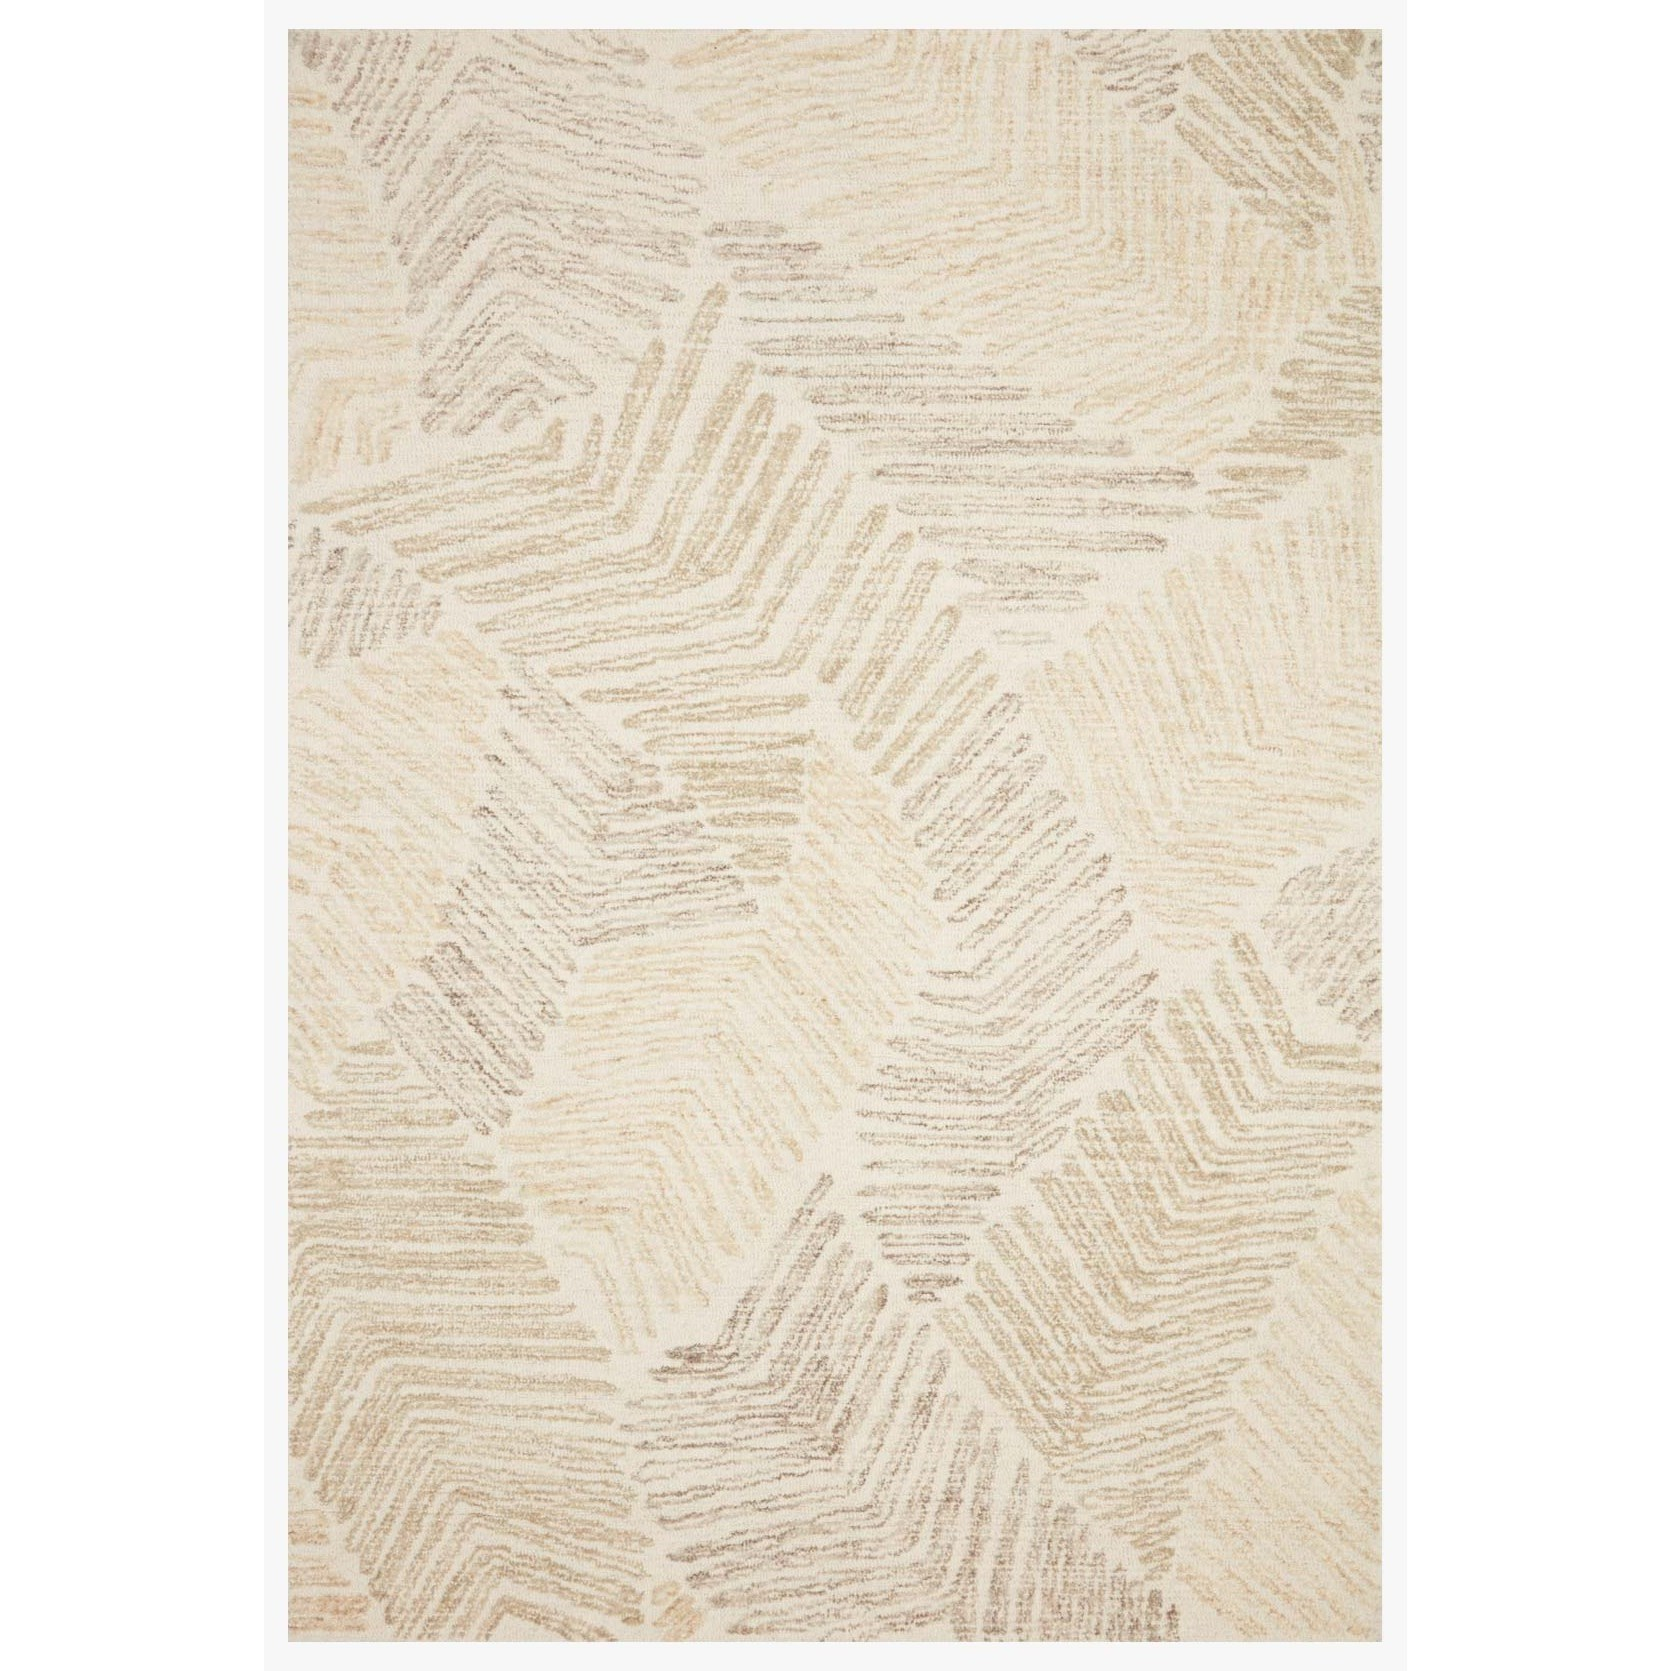 "Milo 2'3"" x 3'9"" Olive / Natural Rug by Loloi Rugs at Belfort Furniture"